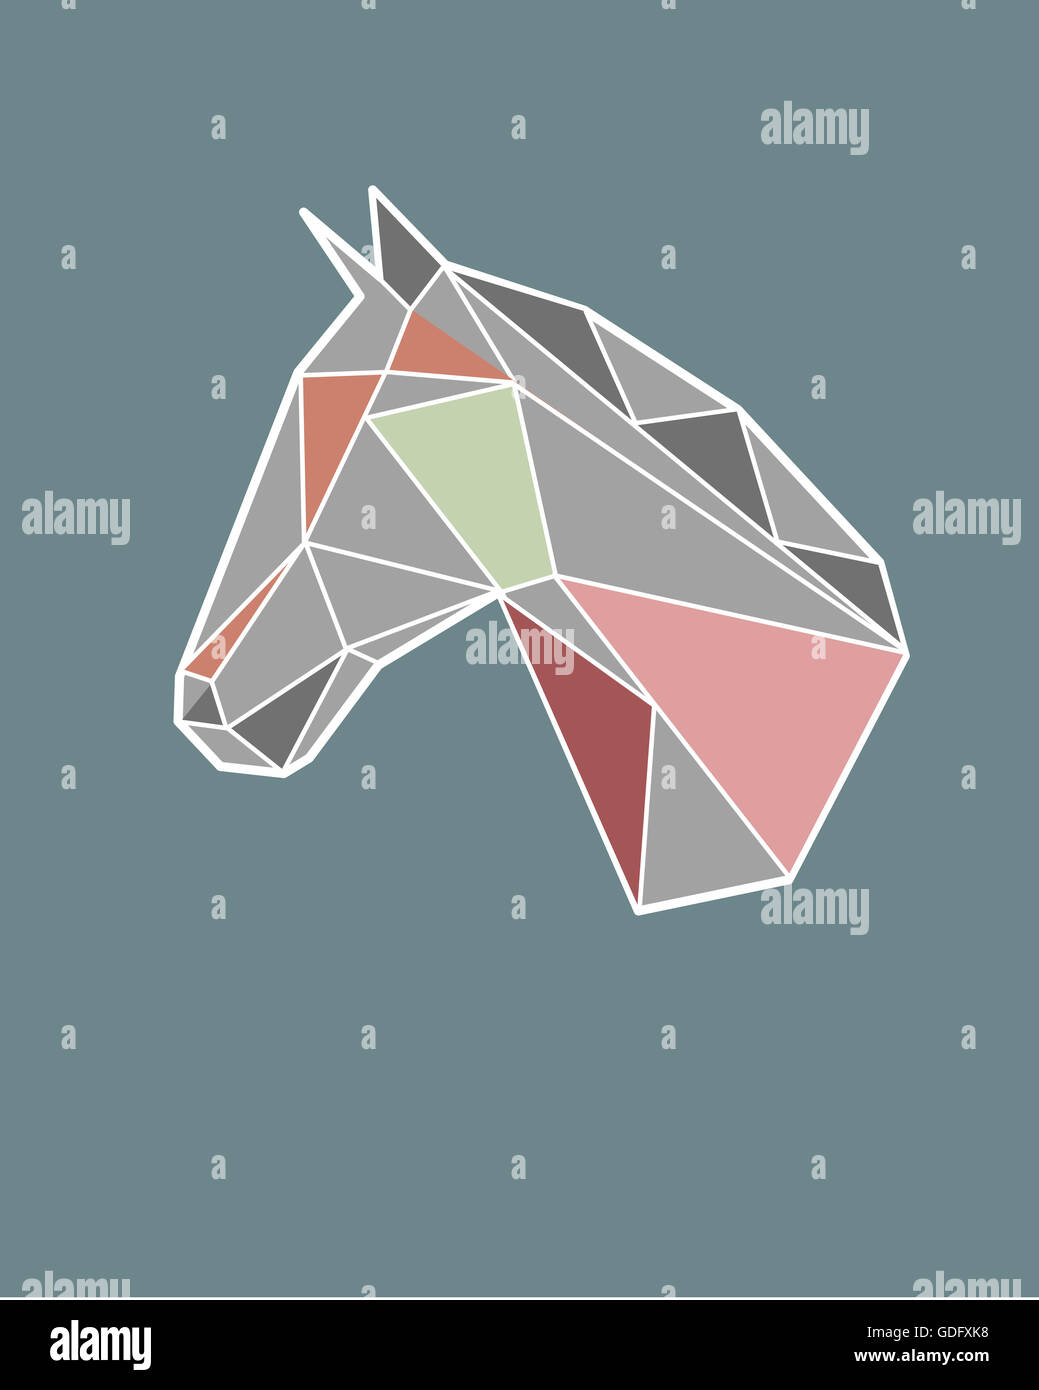 Hand Drawn Illustration Or Drawing Of A Geometric Horse Head Stock Photo Alamy